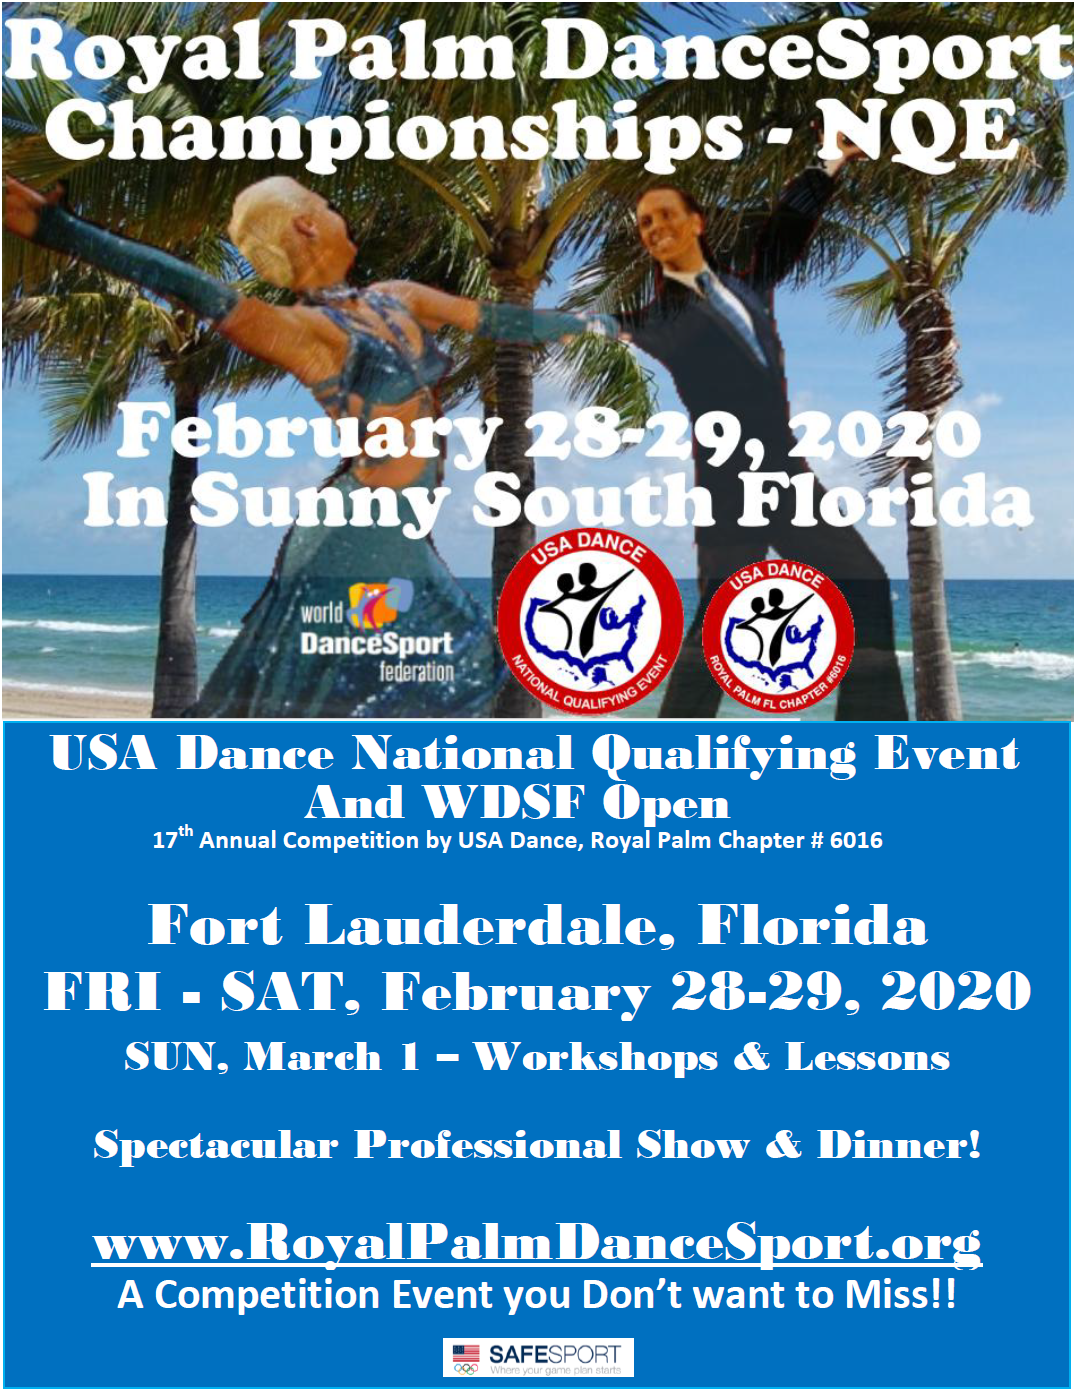 Royal Palm DanceSport Championships - February 28-29, 2020